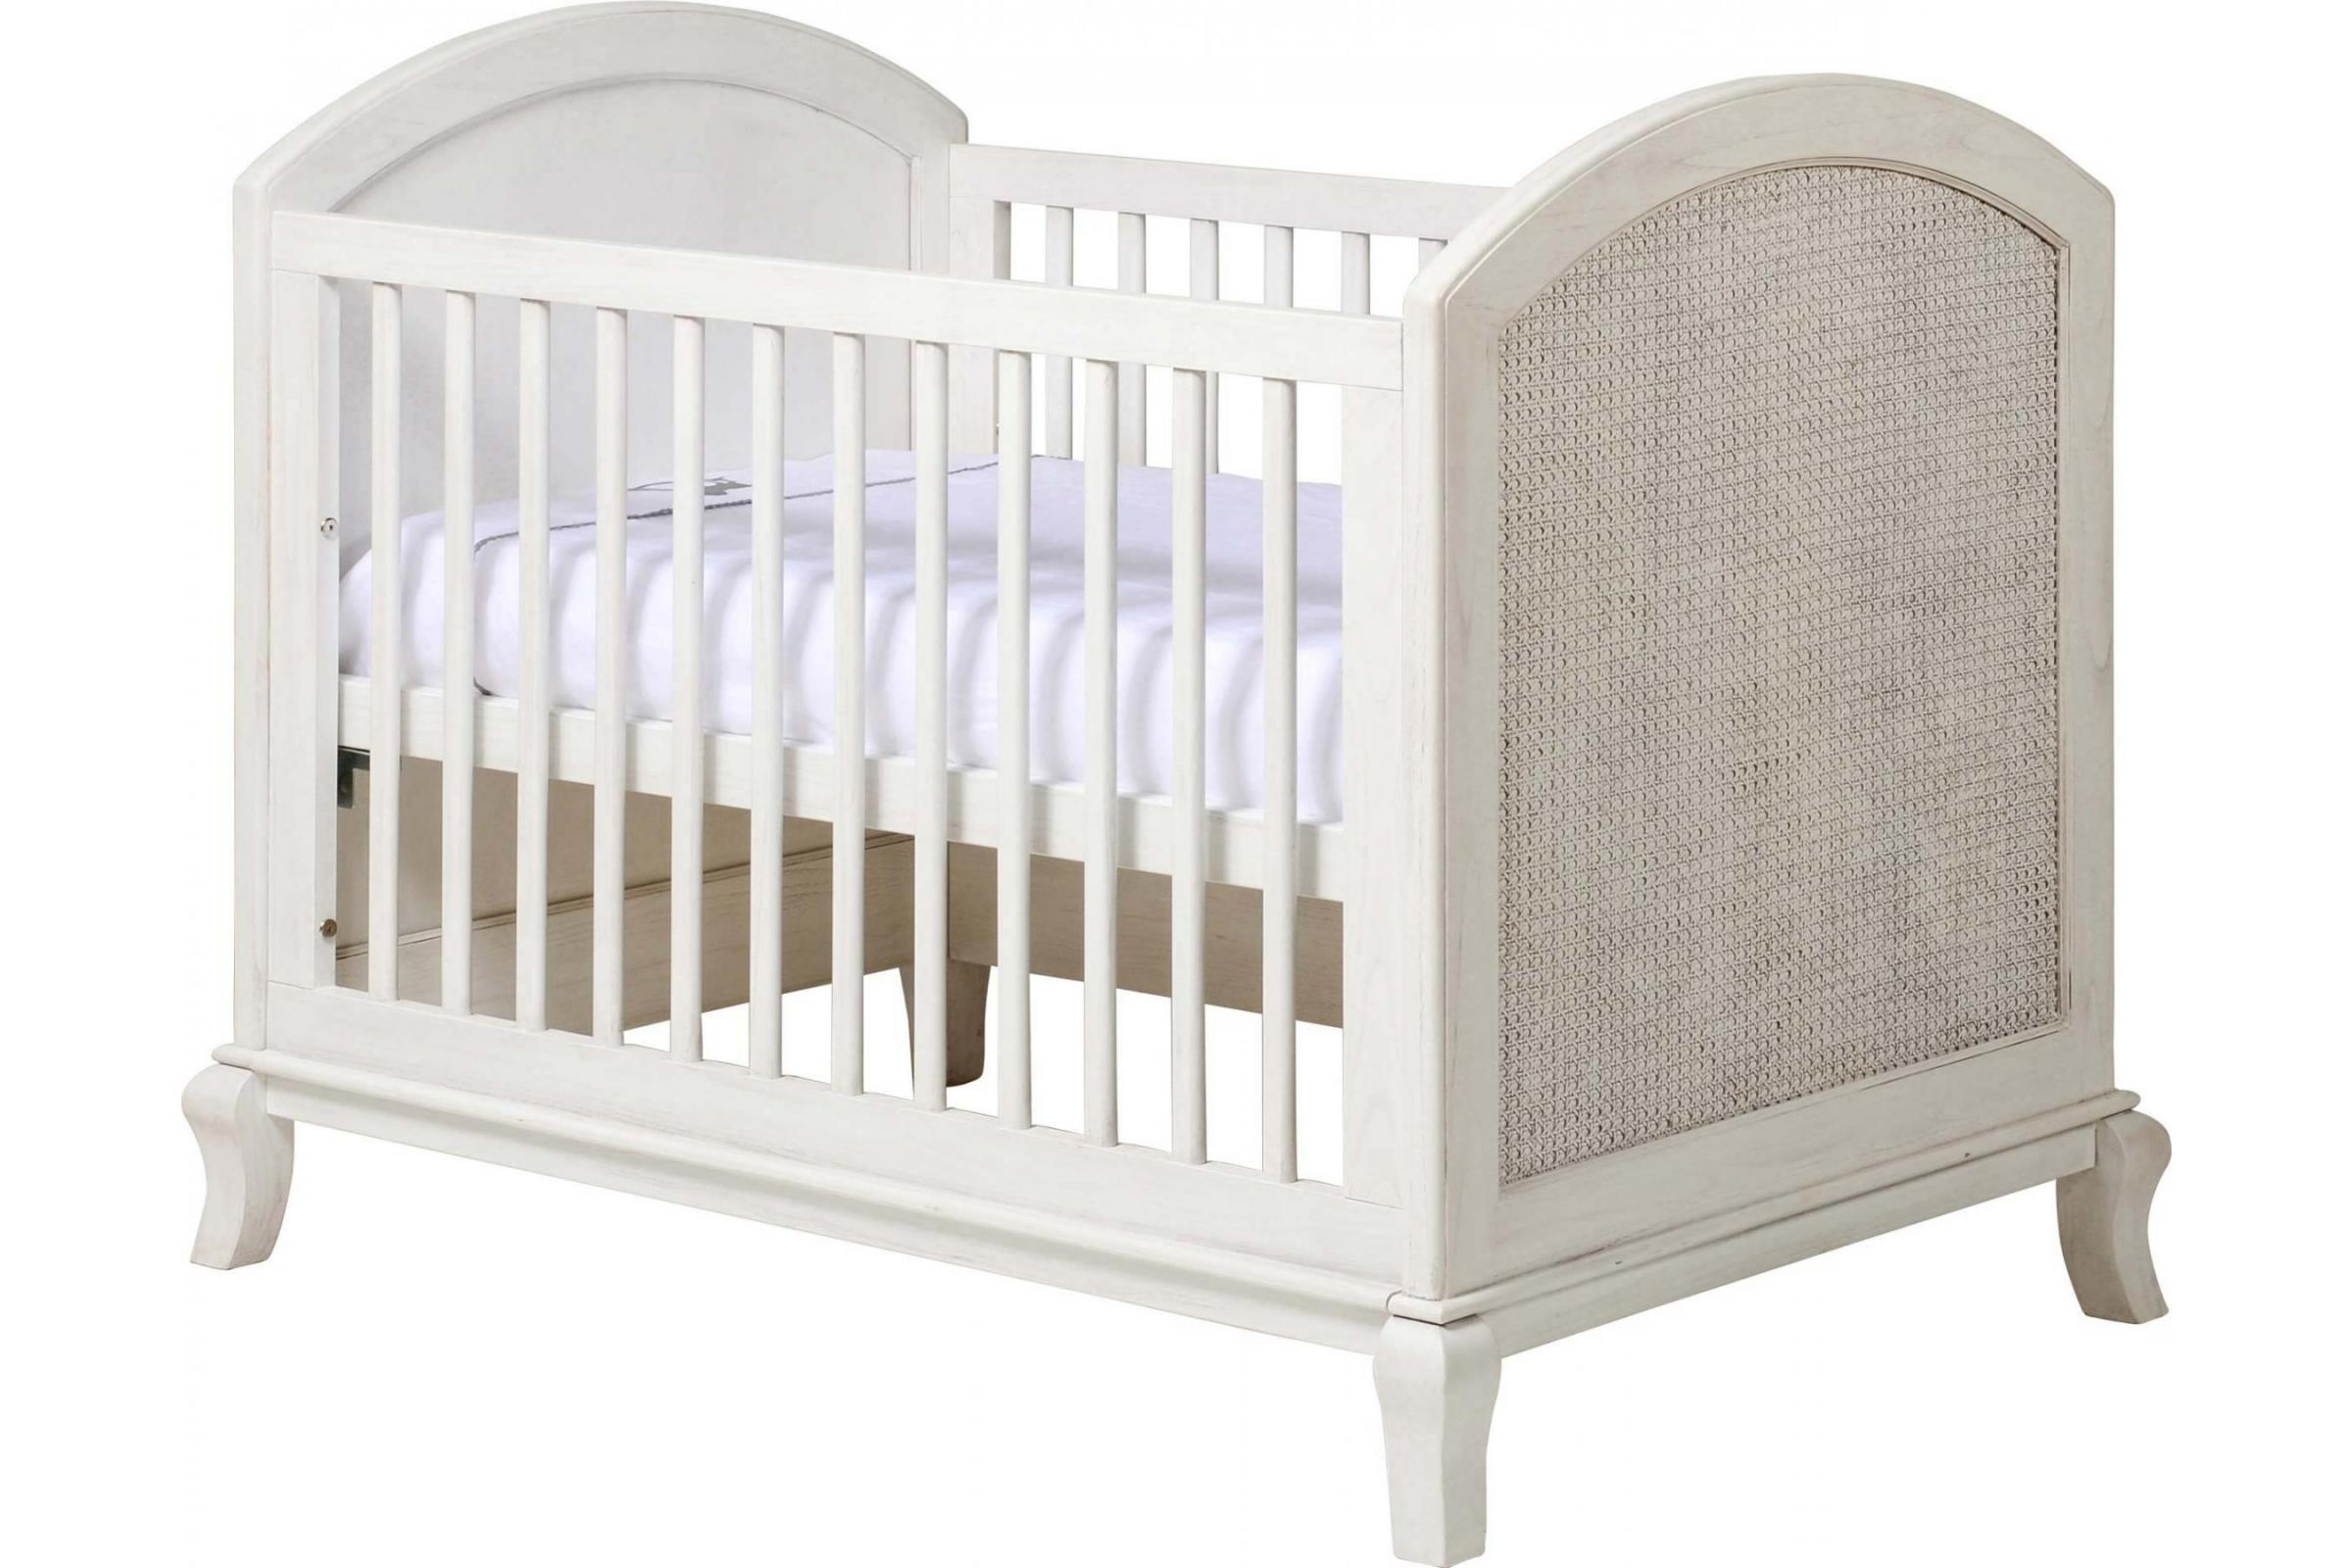 Cot Baby Nursery Furniture Bassinets Cots And Cradles Babyroad